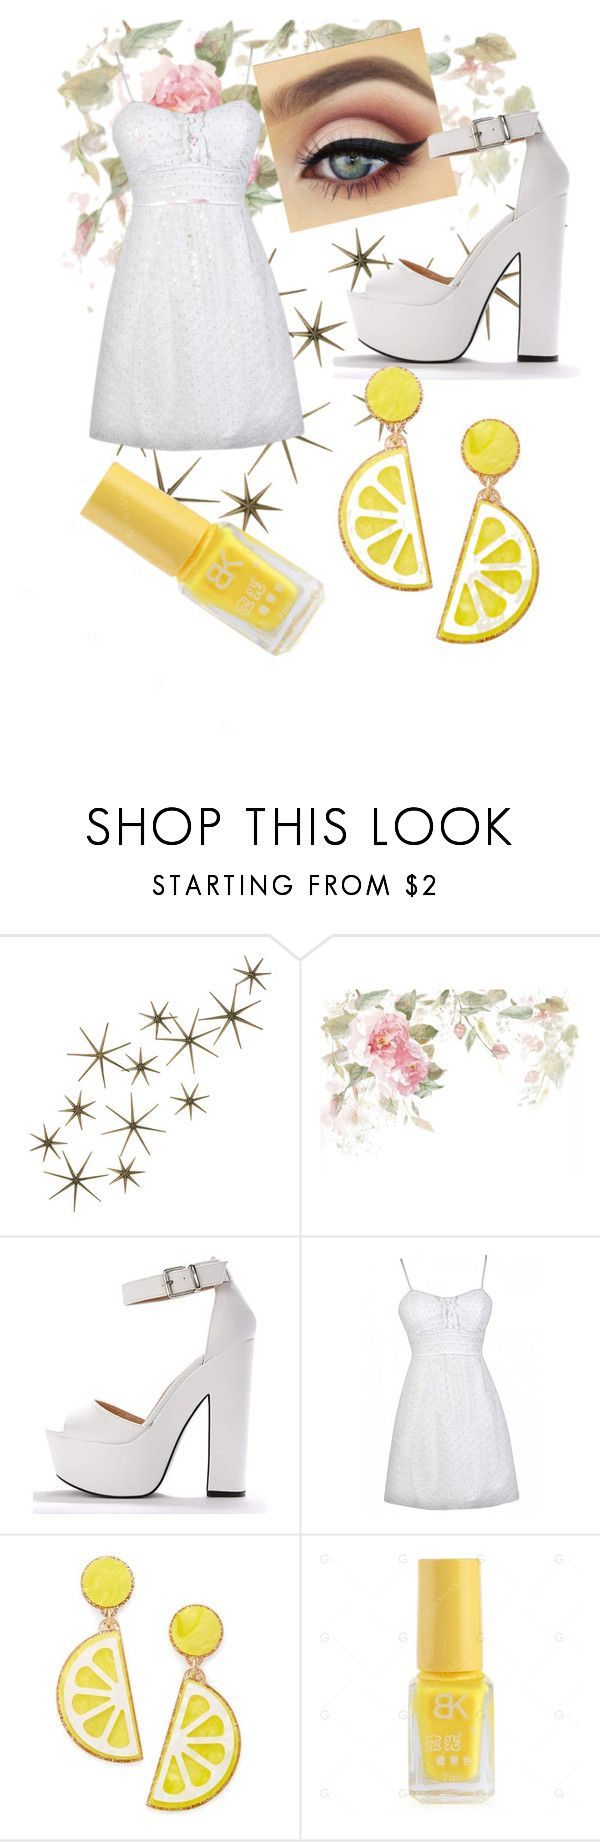 """Lemon Lover 🍋"" by sarah-bailey-v ❤ liked on Polyvore featuring Global Views and Celebrate Shop"